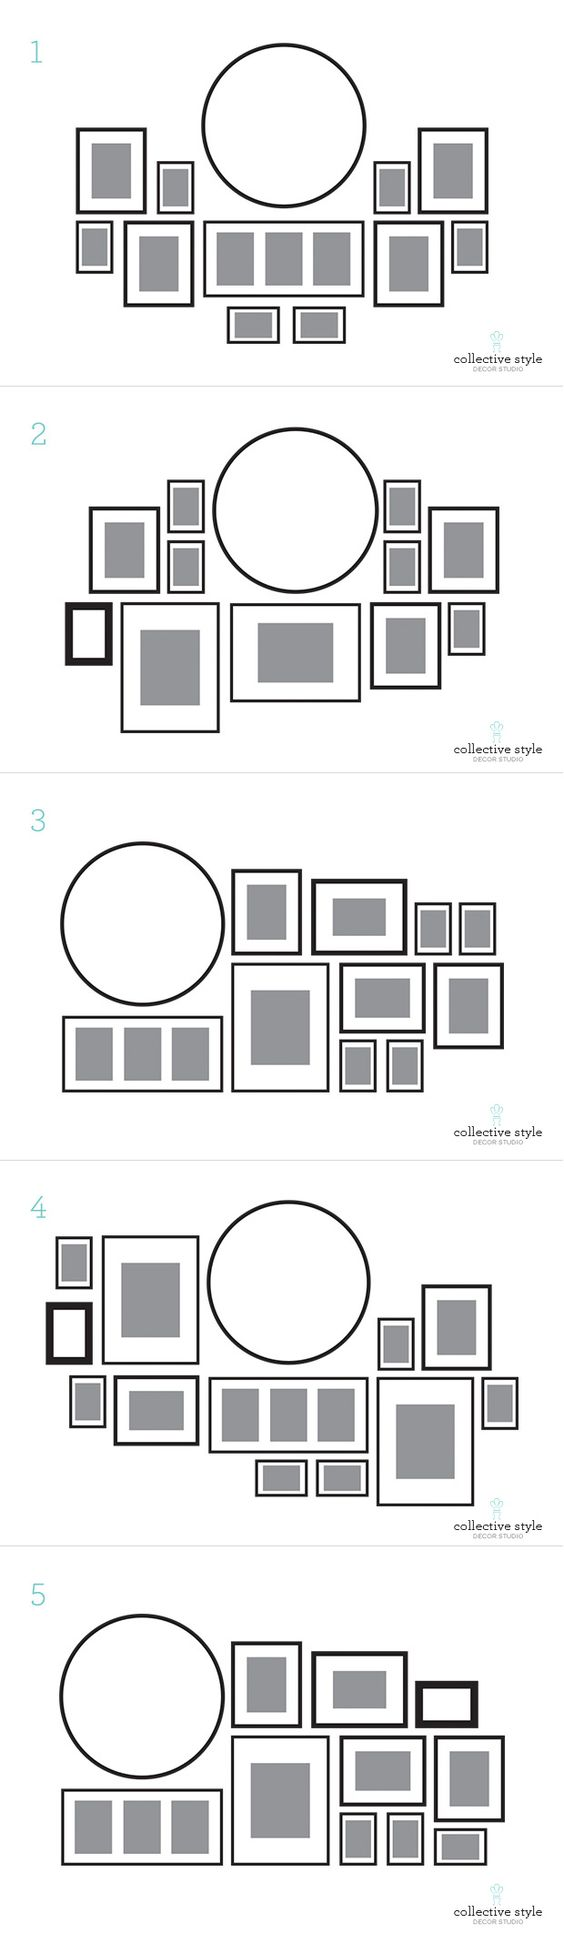 57 ideas to decorate walls with pictures shelterness for Picture wall layout